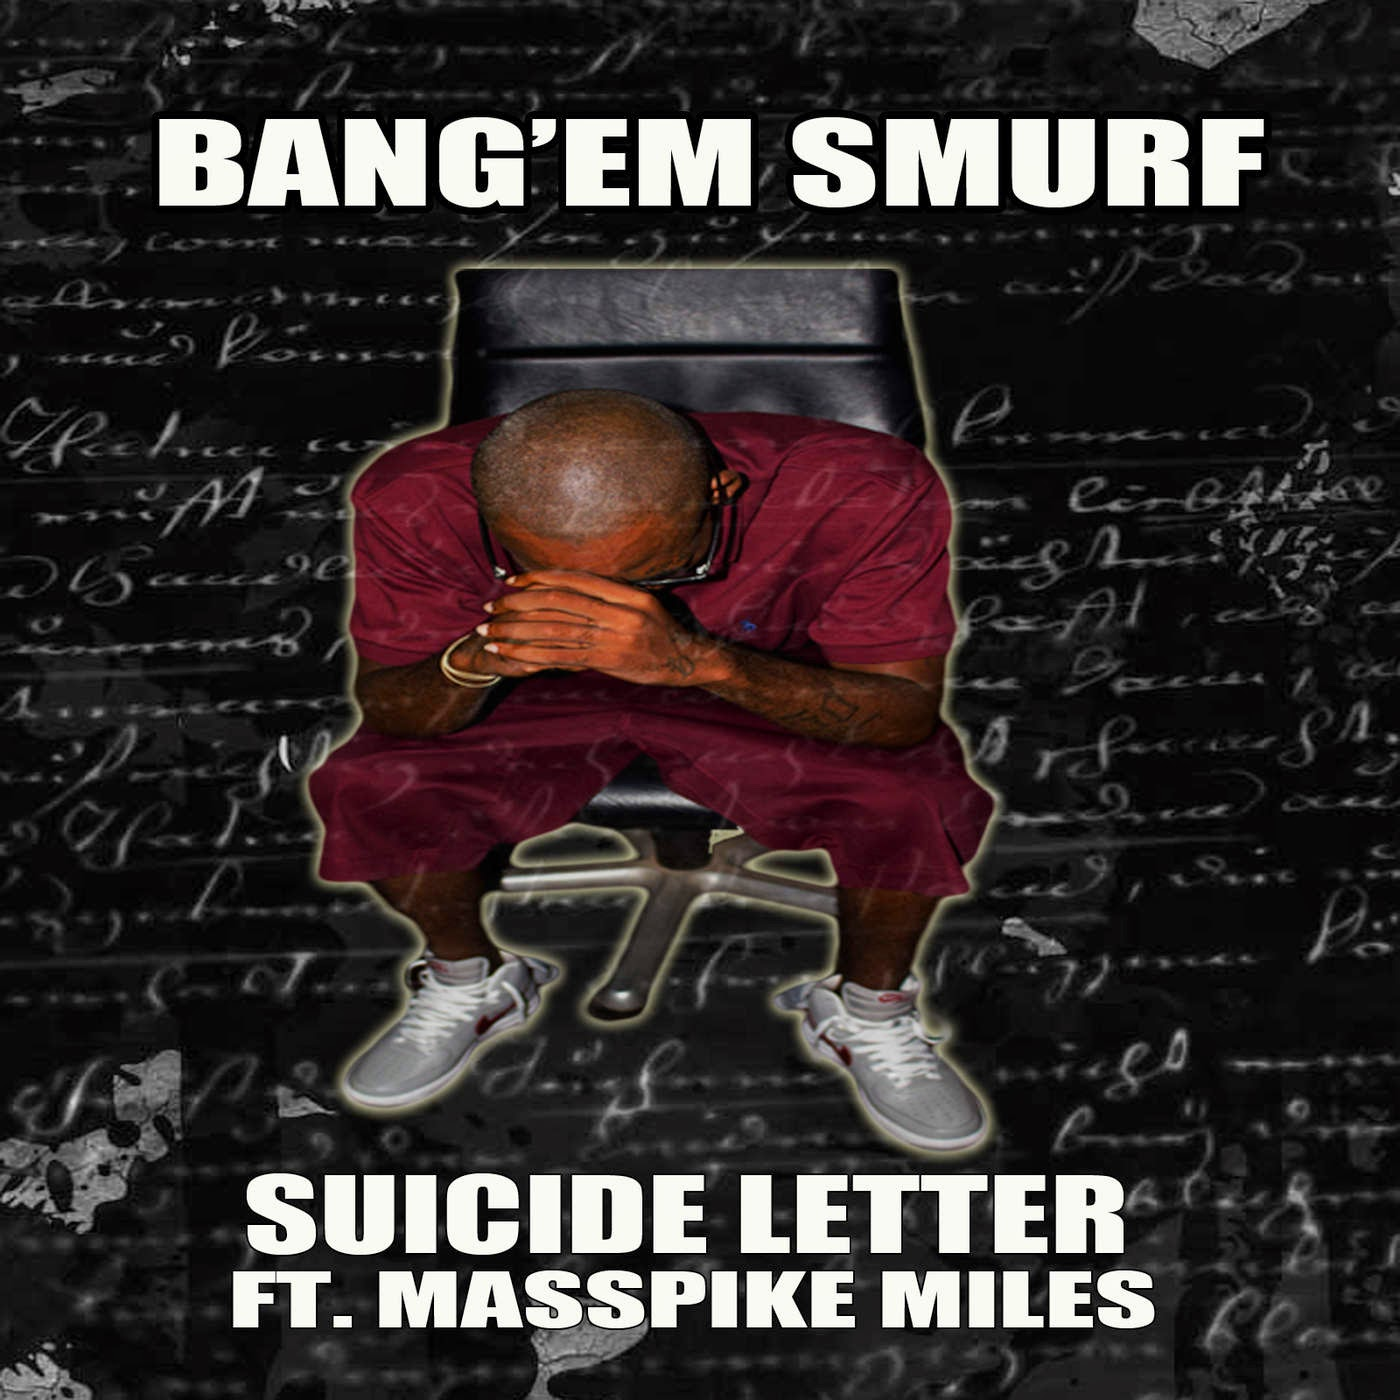 Bang 'Em Smurf - Suicide Letter (feat. Masspikemiles) - Single Cover